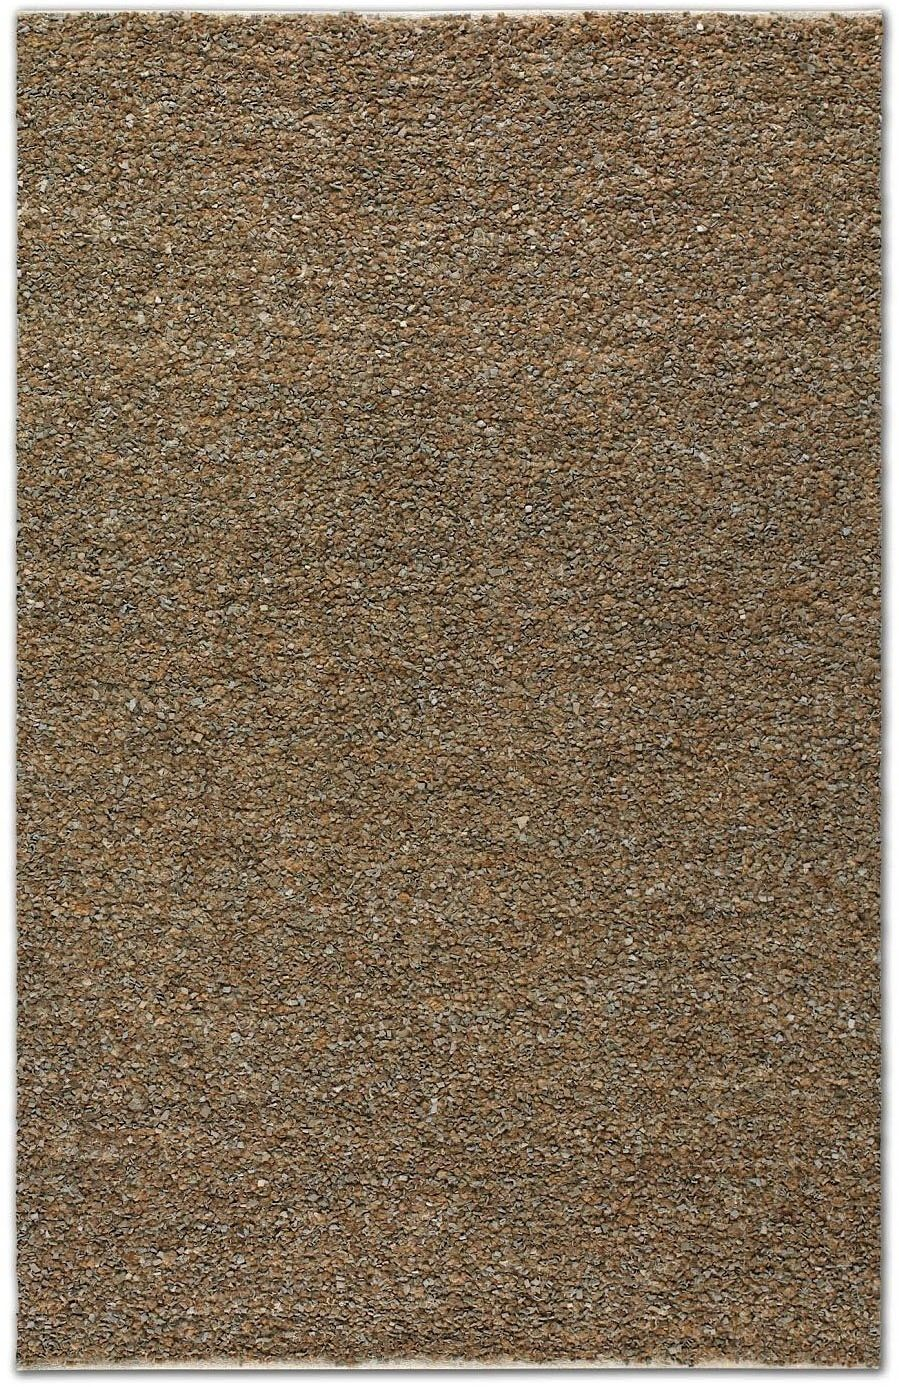 uttermost tufara contemporary area rug collection